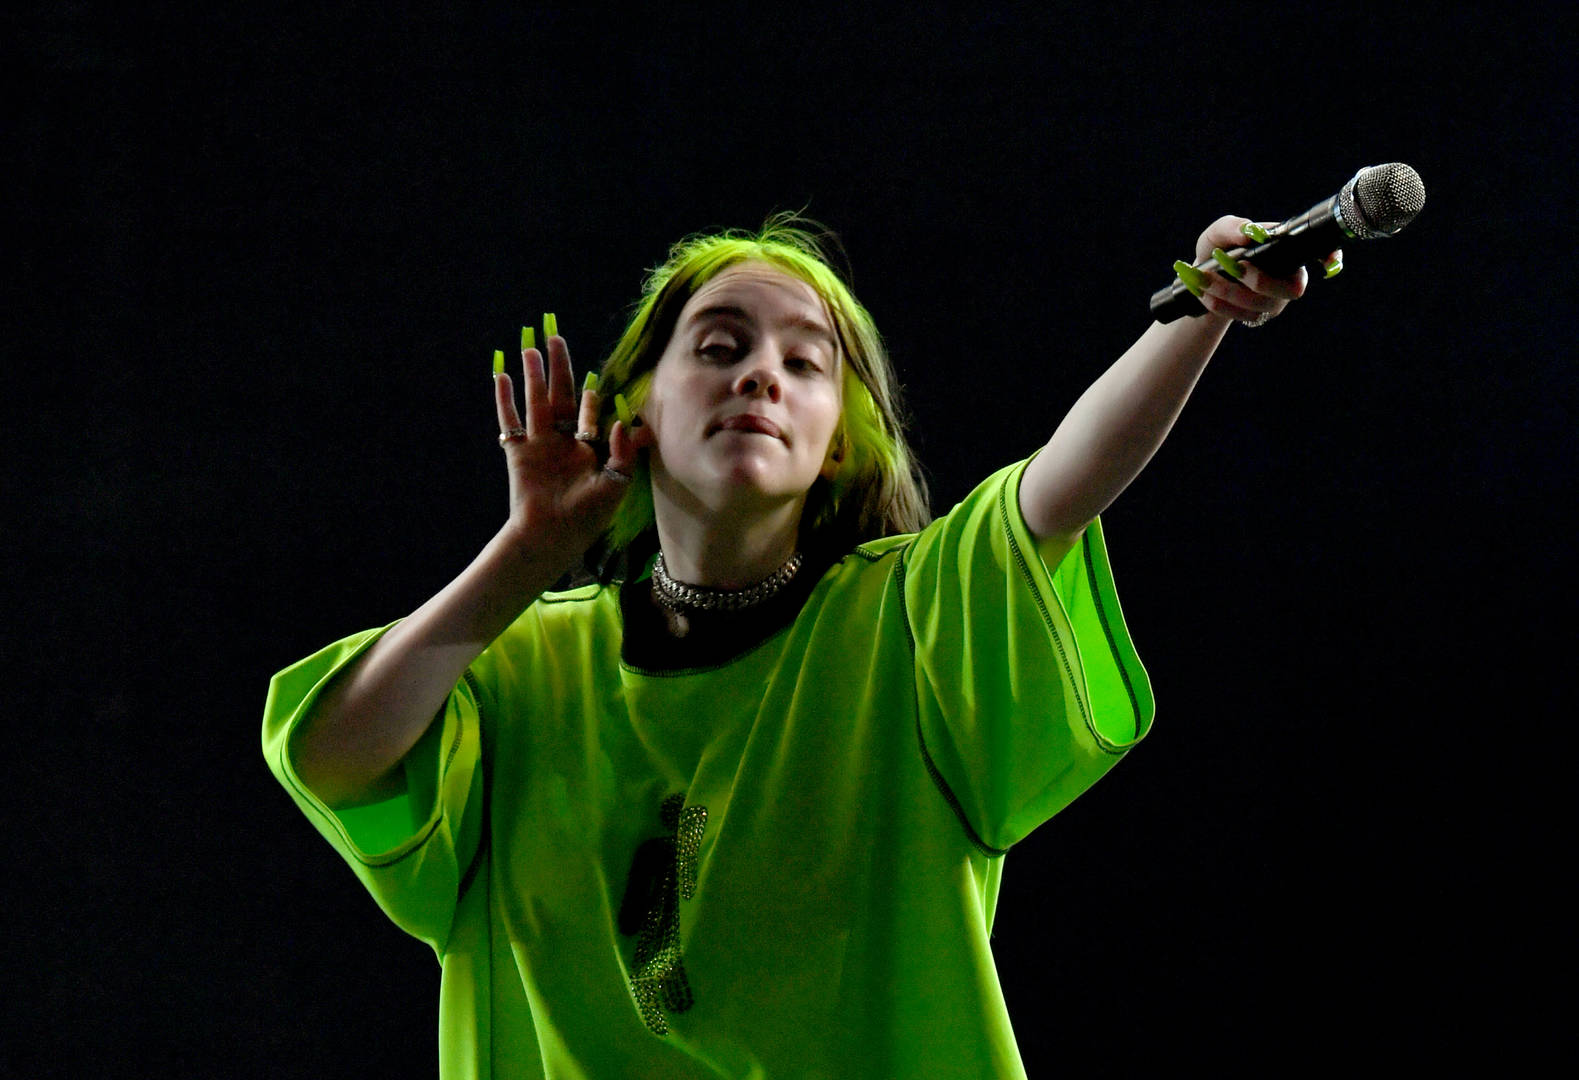 Billie Eilish Was Paid $25 Million For Apple TV+ Documentary About Her Success In 2019